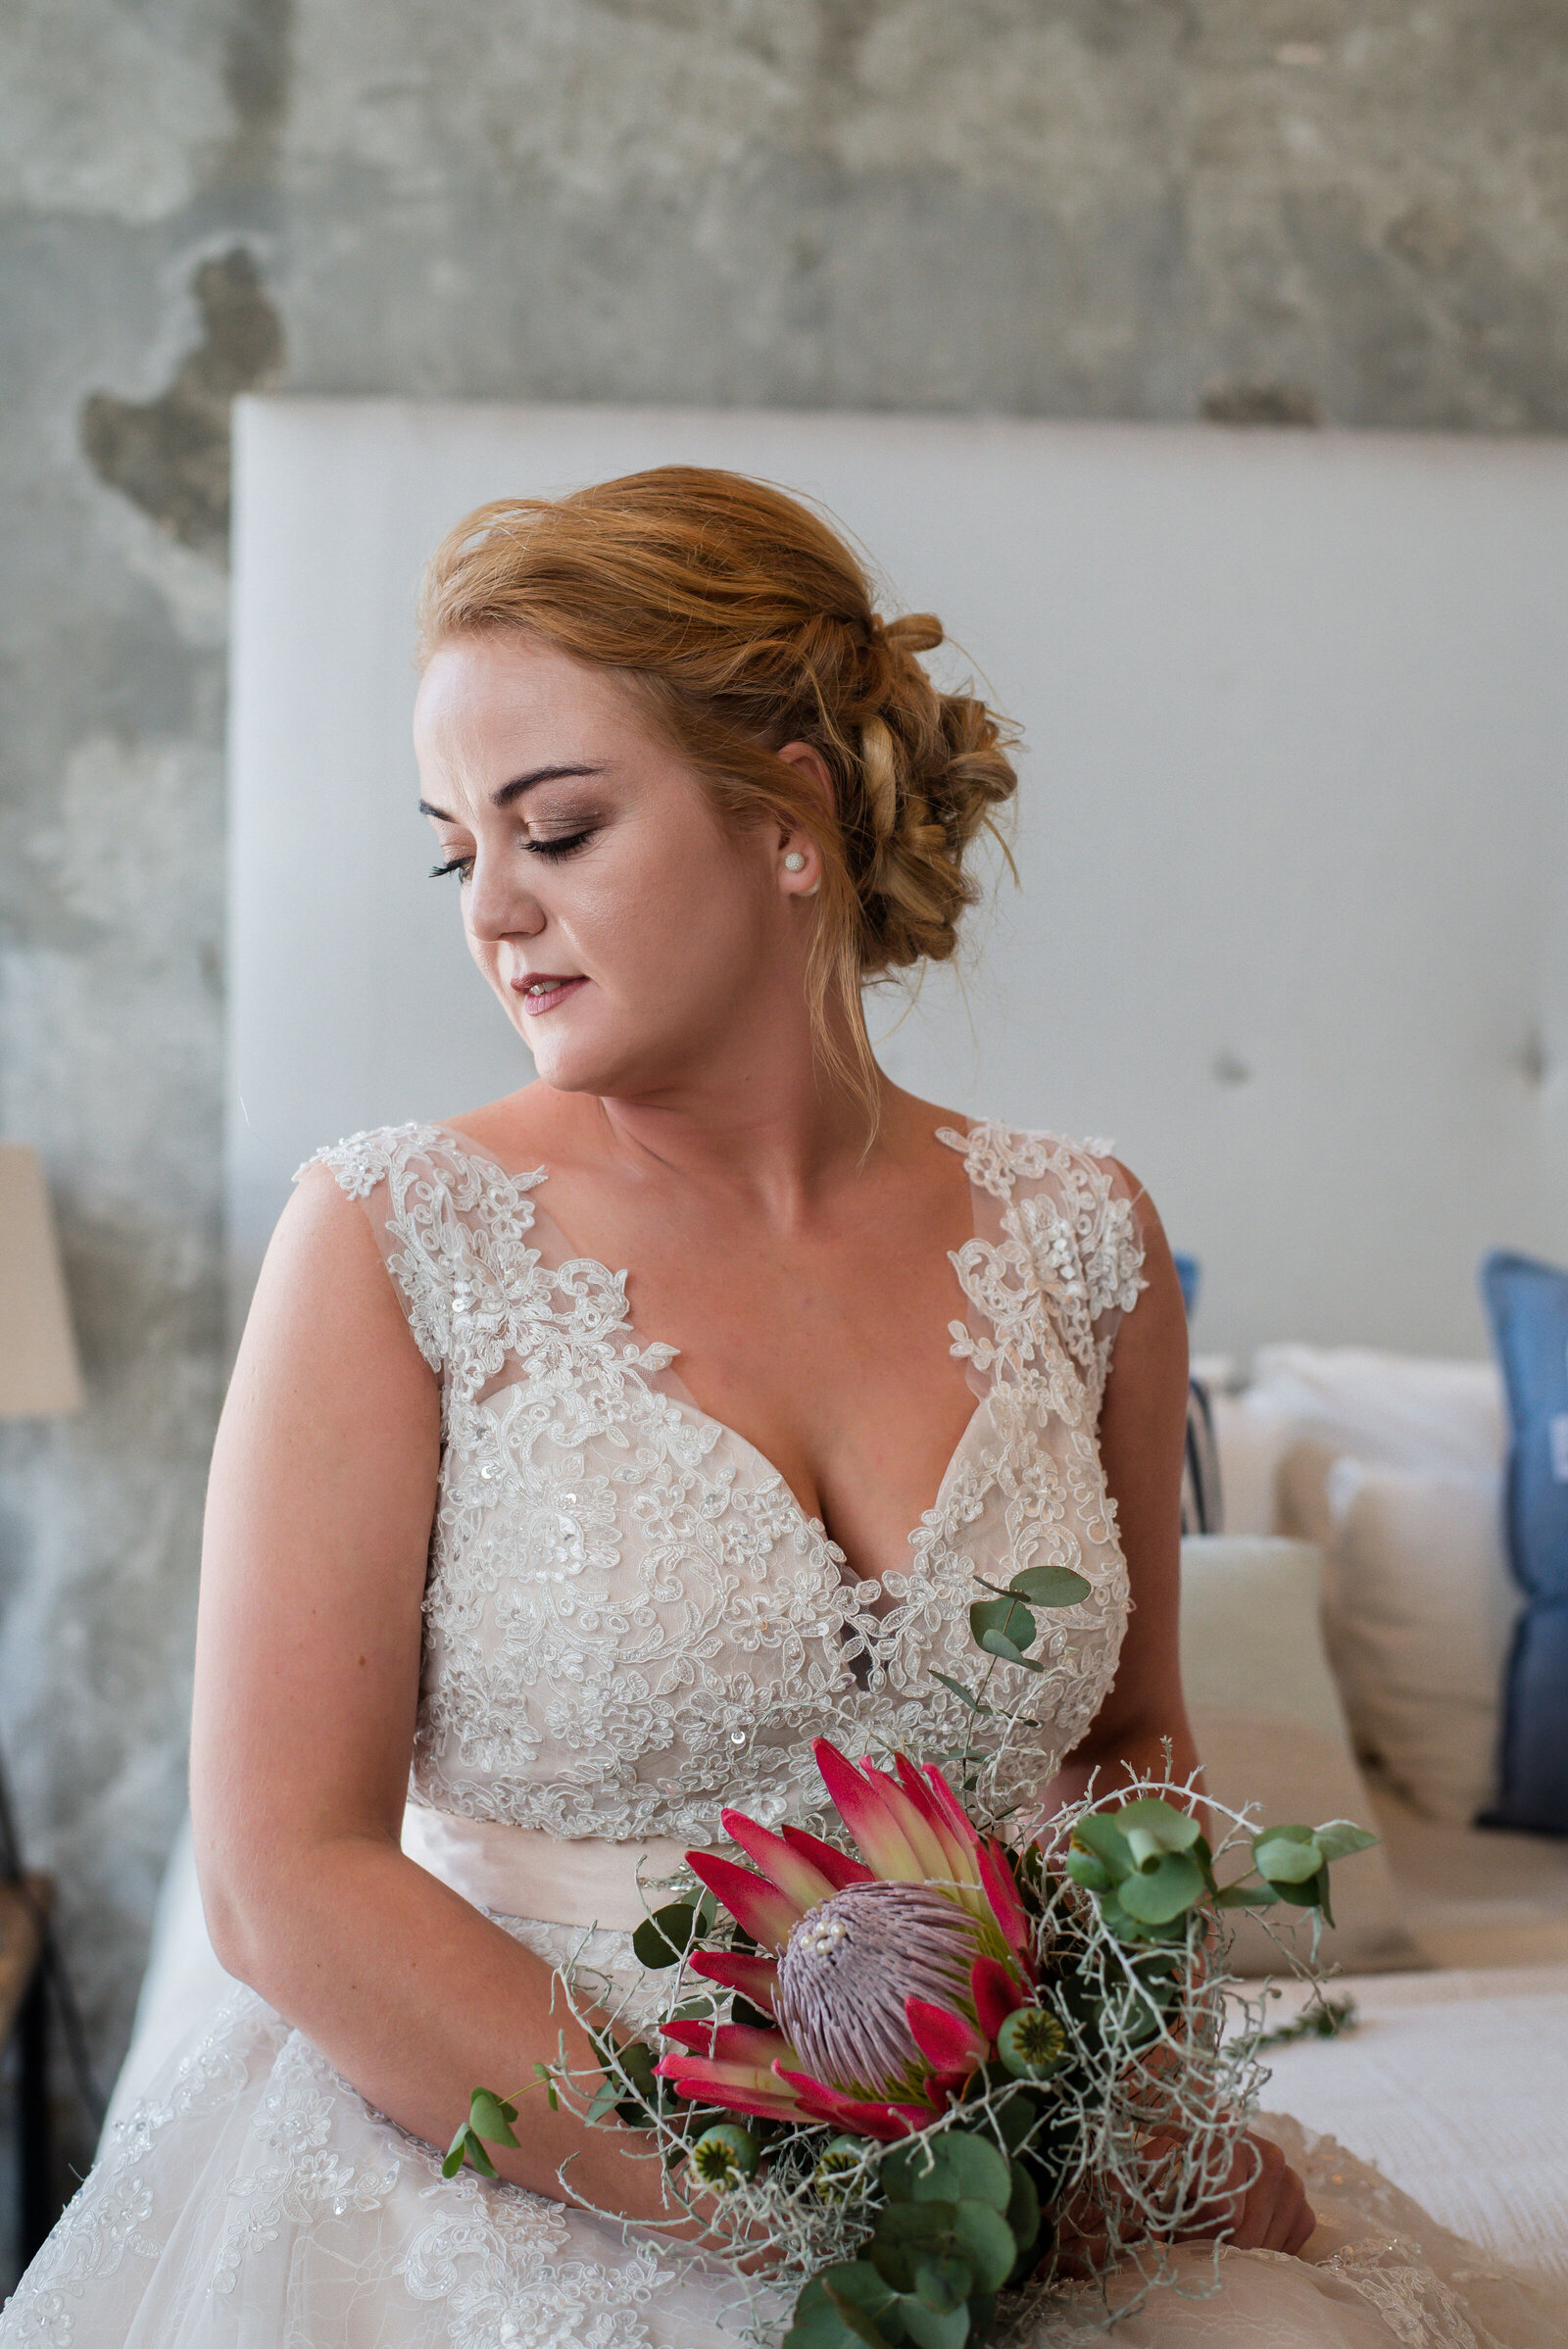 Wedding Photographer + Cape Town venue +Elri Photography+ Weddingdress (17)